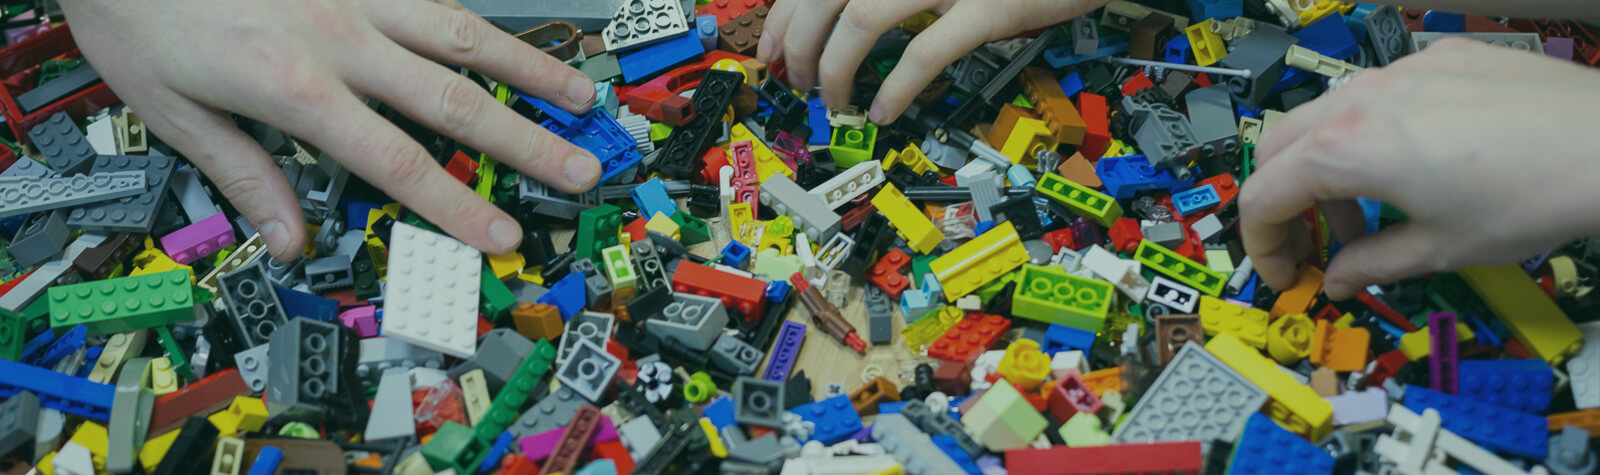 60 years of LEGO and how it powers imagination